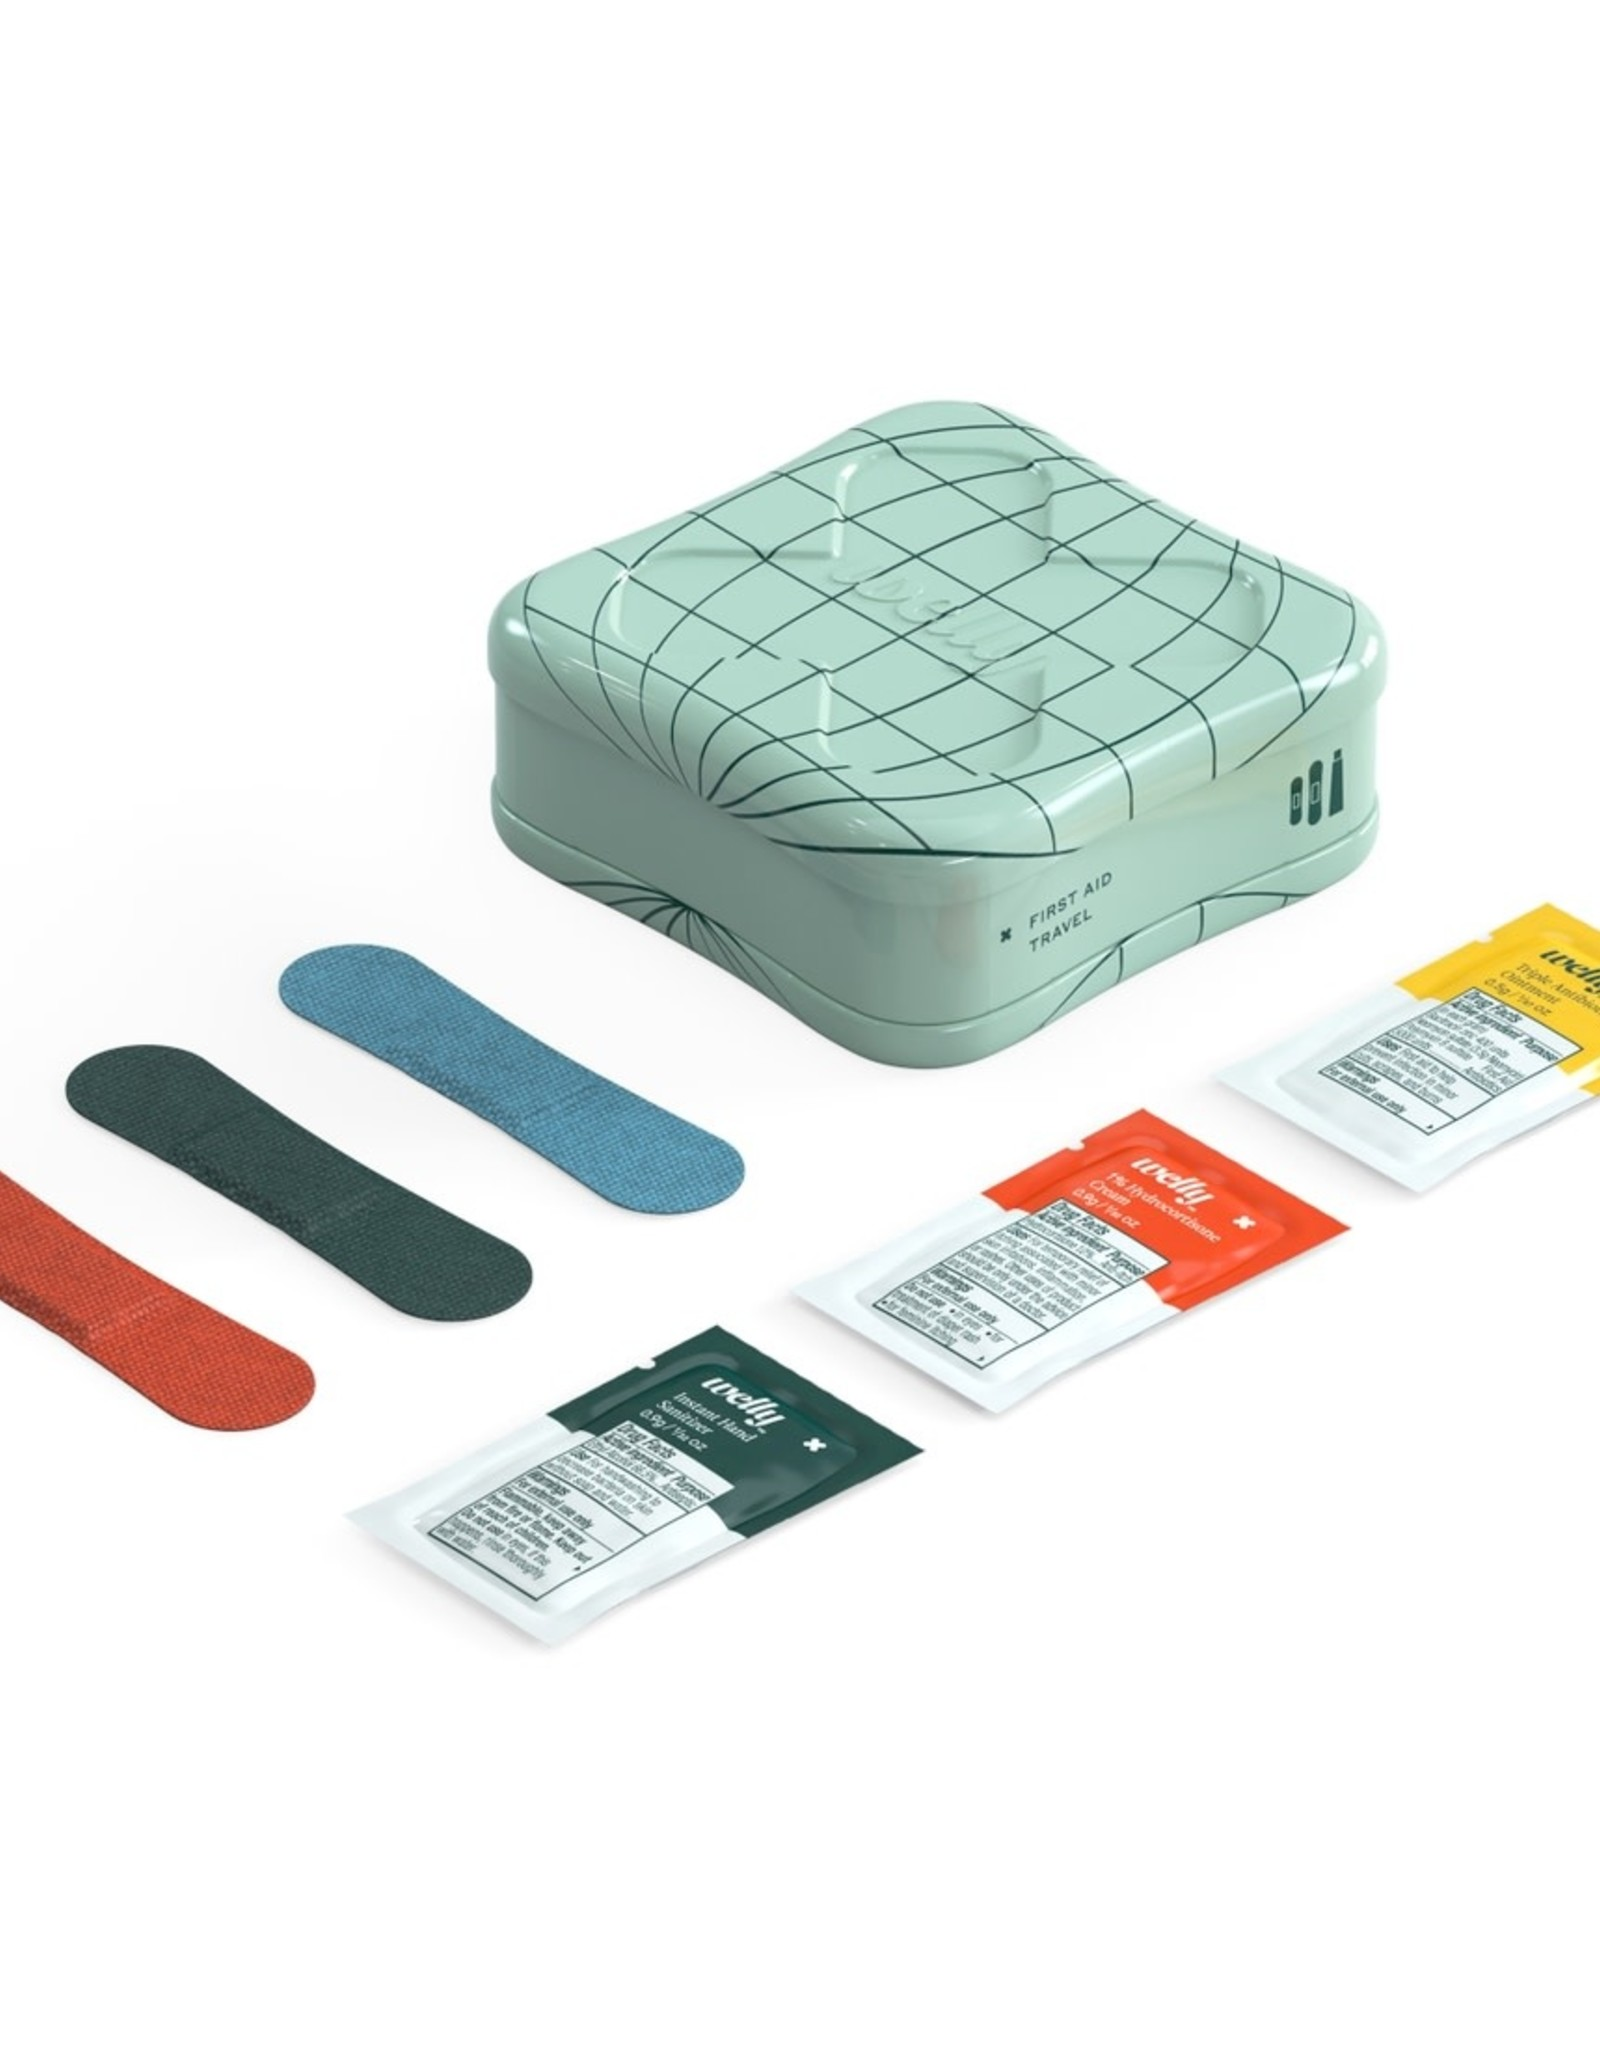 Welly Welly | Human Repair Kit- First Aid Travel Kit